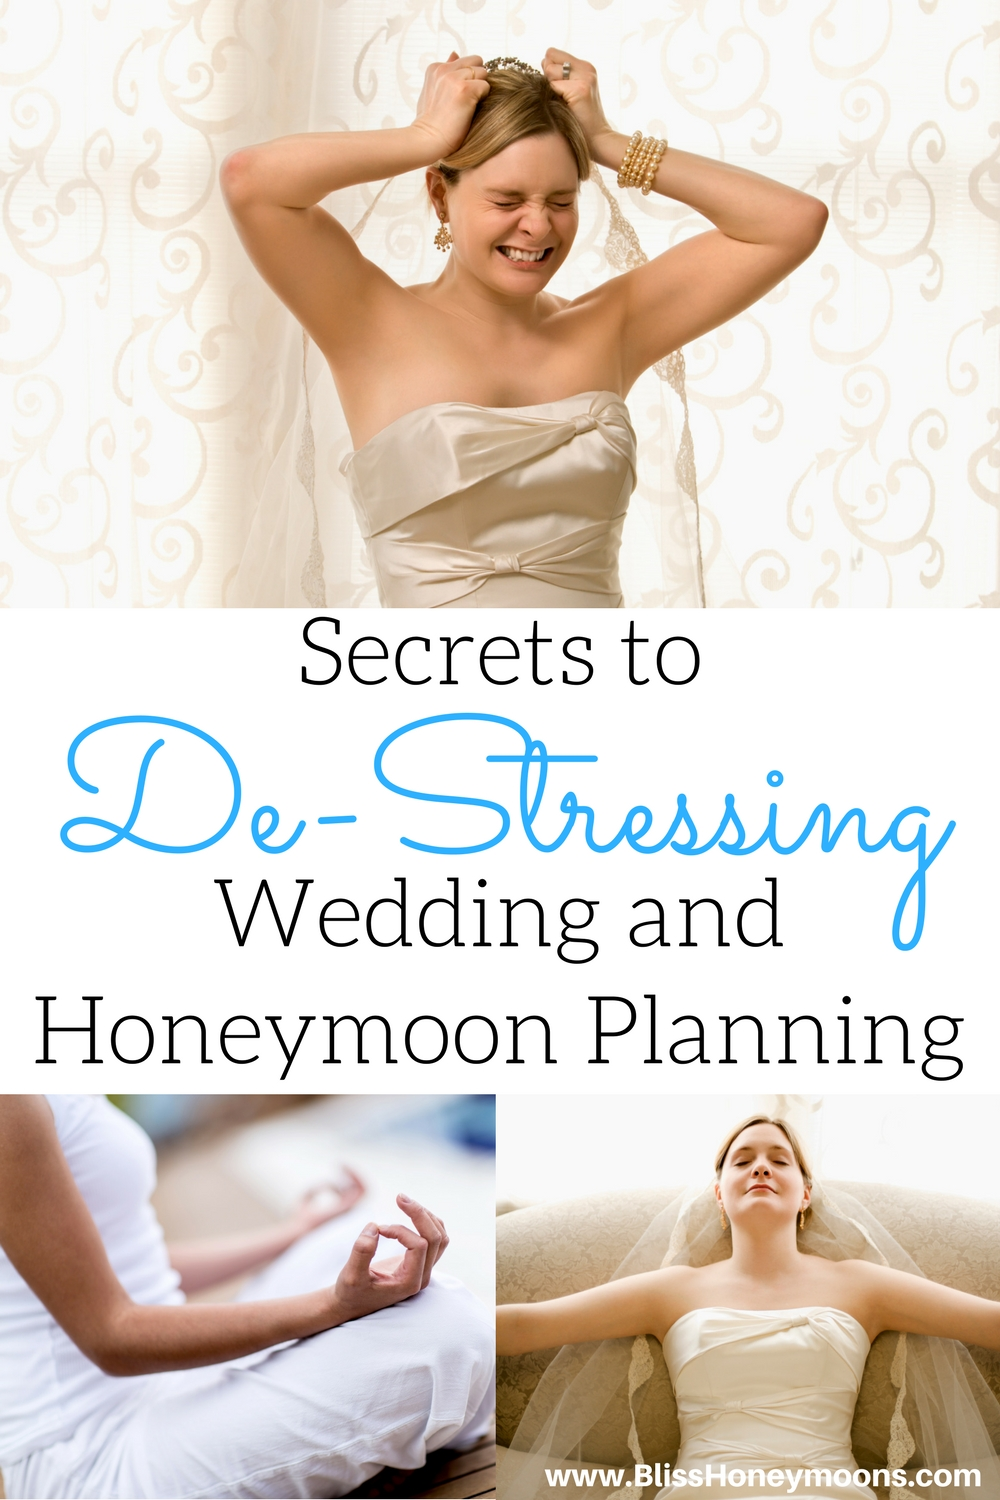 coping with wedding planning stress, de-stressing wedding and honeymoon planning, secrets for peaceful wedding planning, minimize wedding stress, keep your cool wedding planning, peaceful destination wedding planning